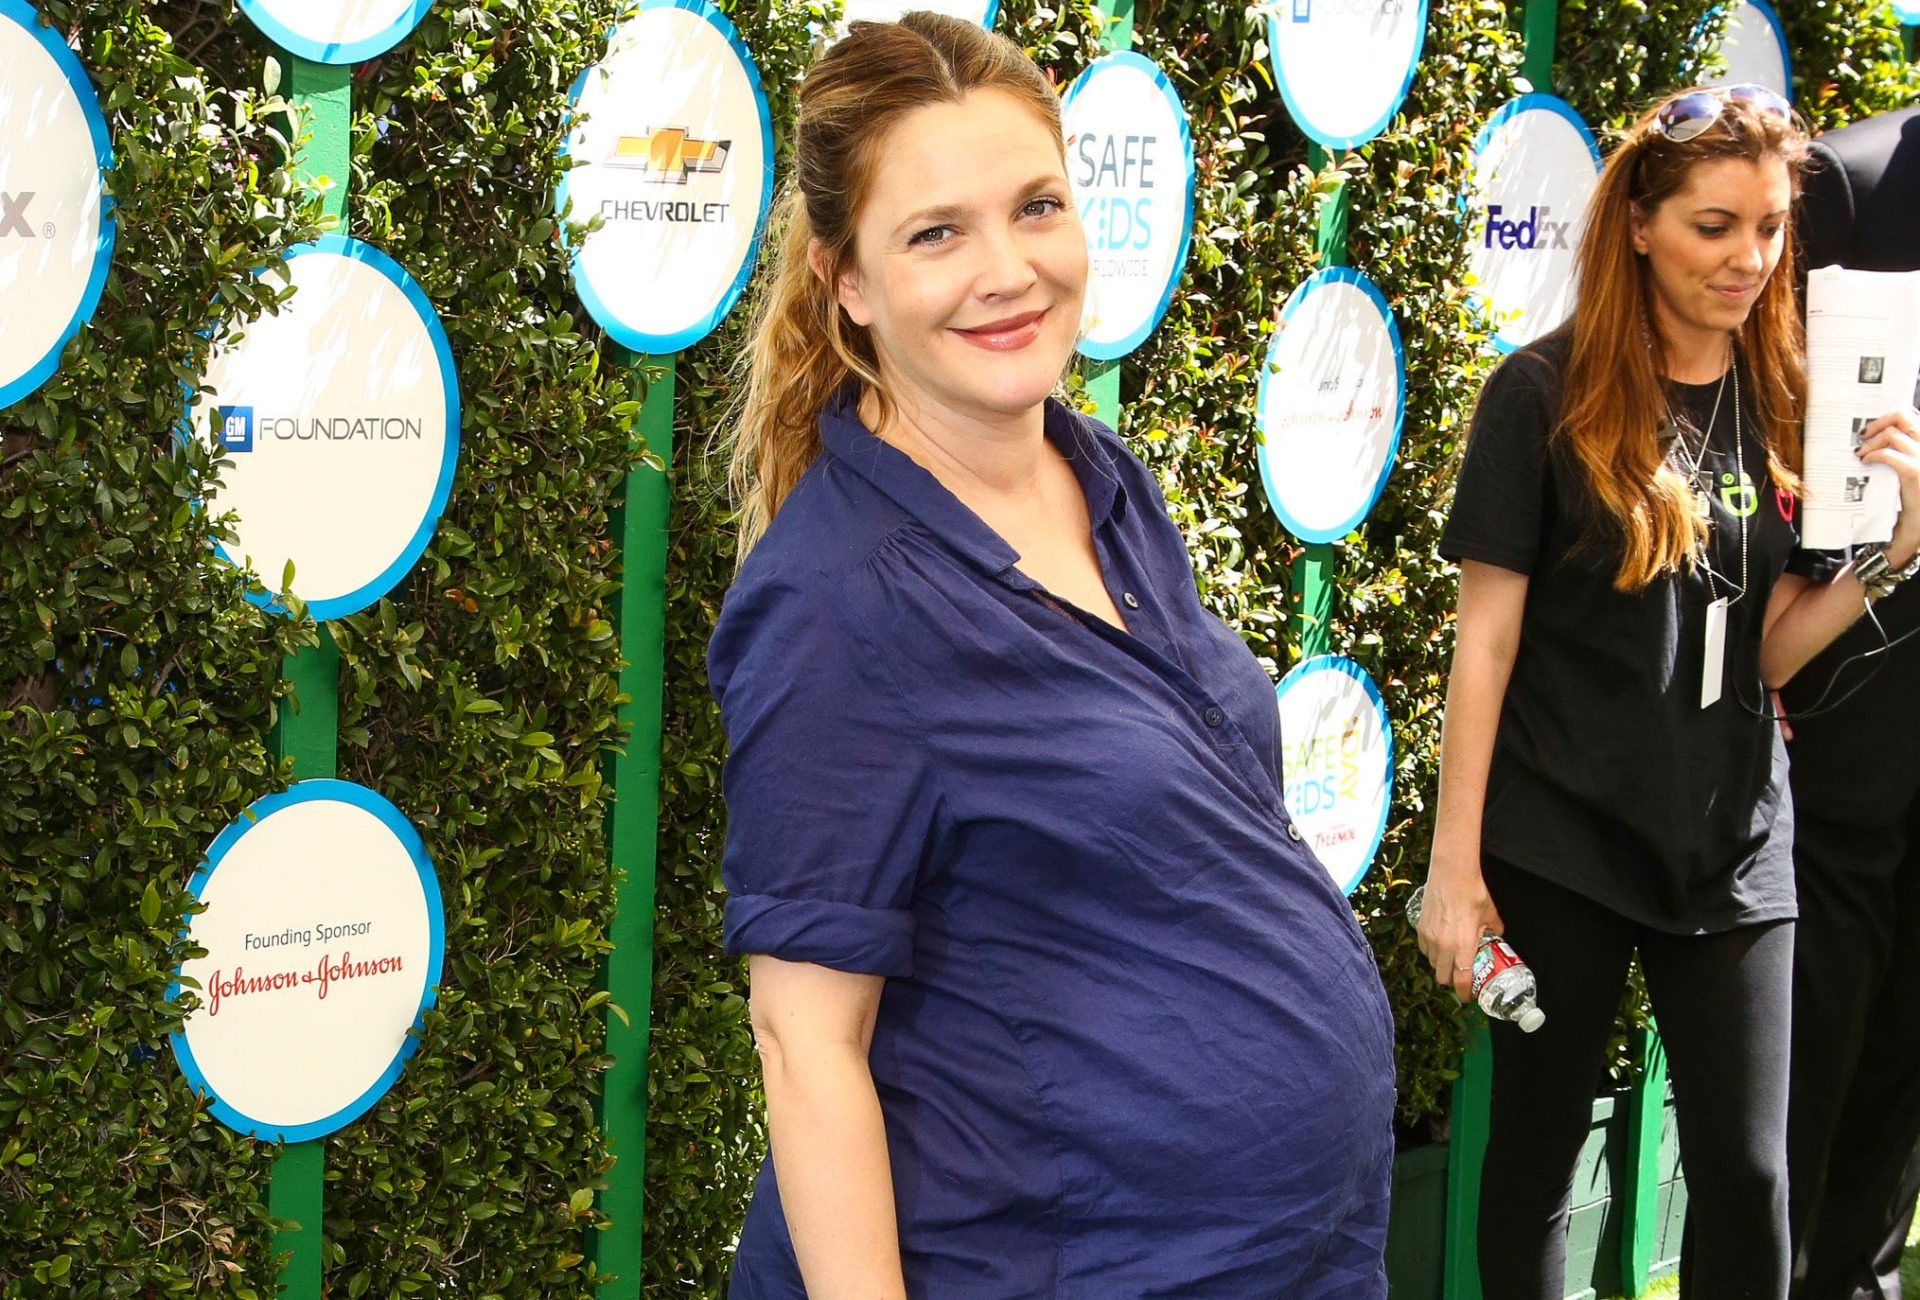 Actress gives birth to daughter Frankie